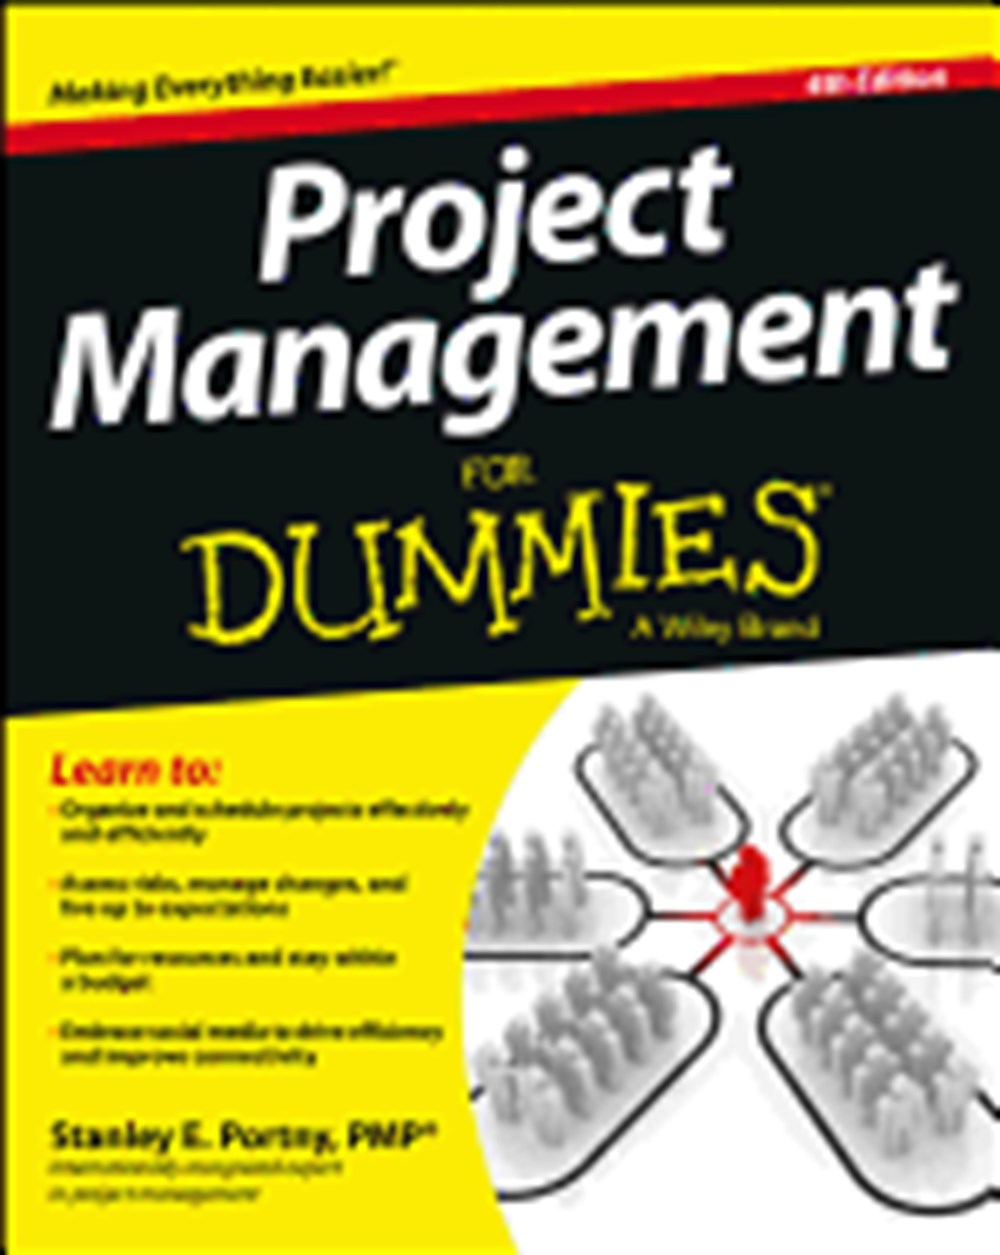 Project Management for Dummies (Revised)